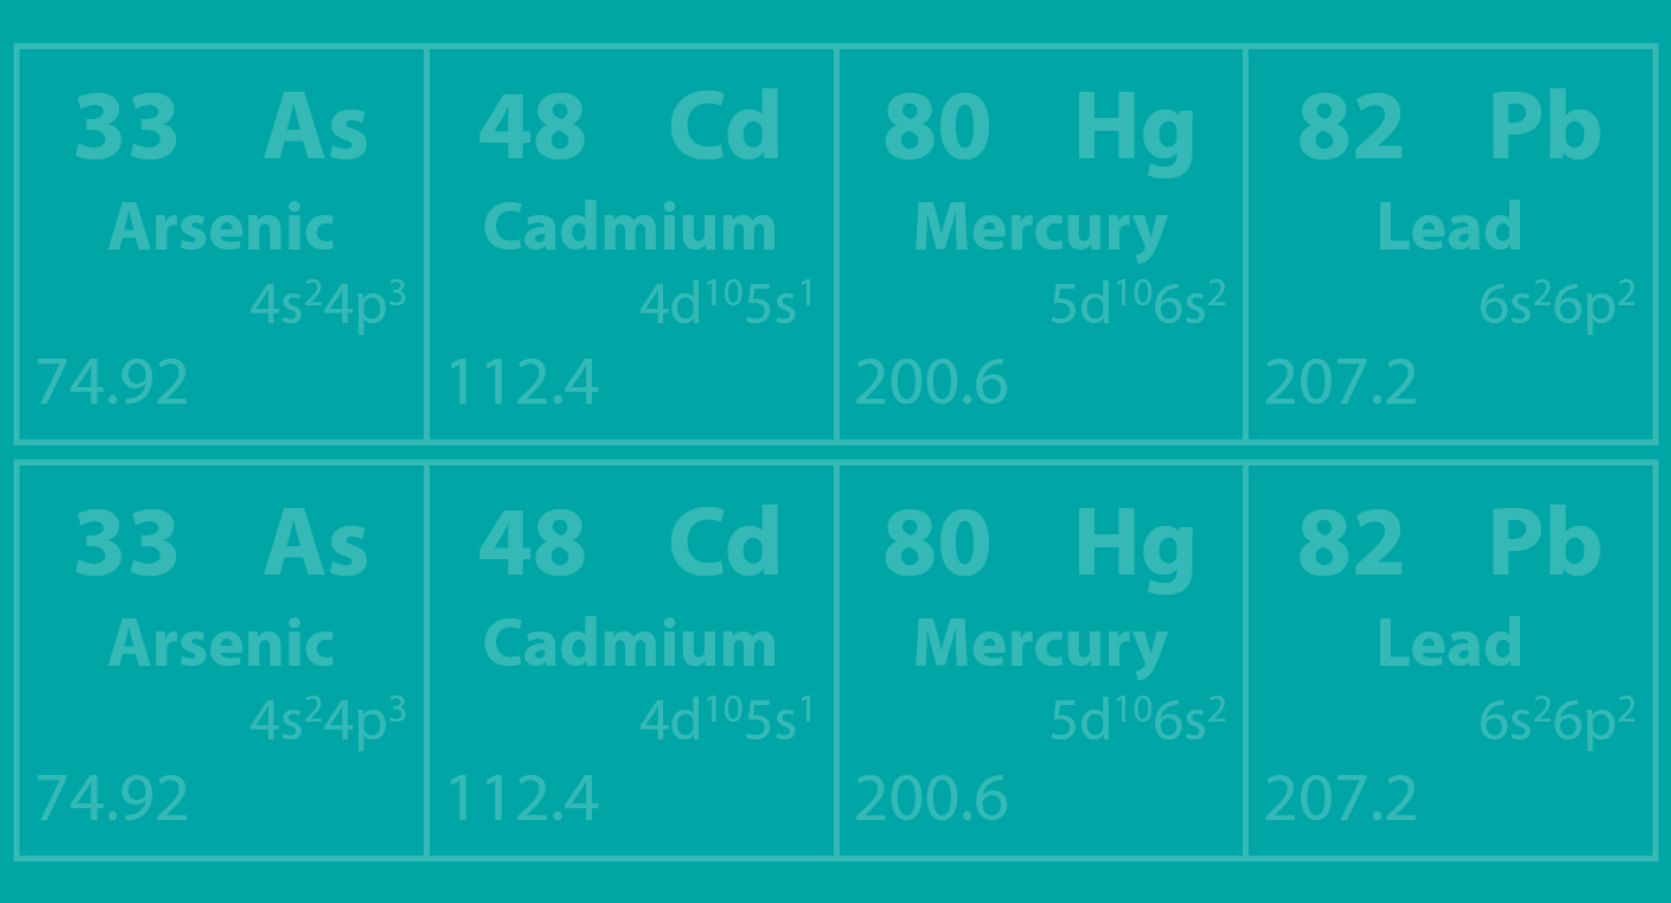 Heavy Metals in CBD – How to Find A Qualified Assembly Manufacturer for Your Vaporizers